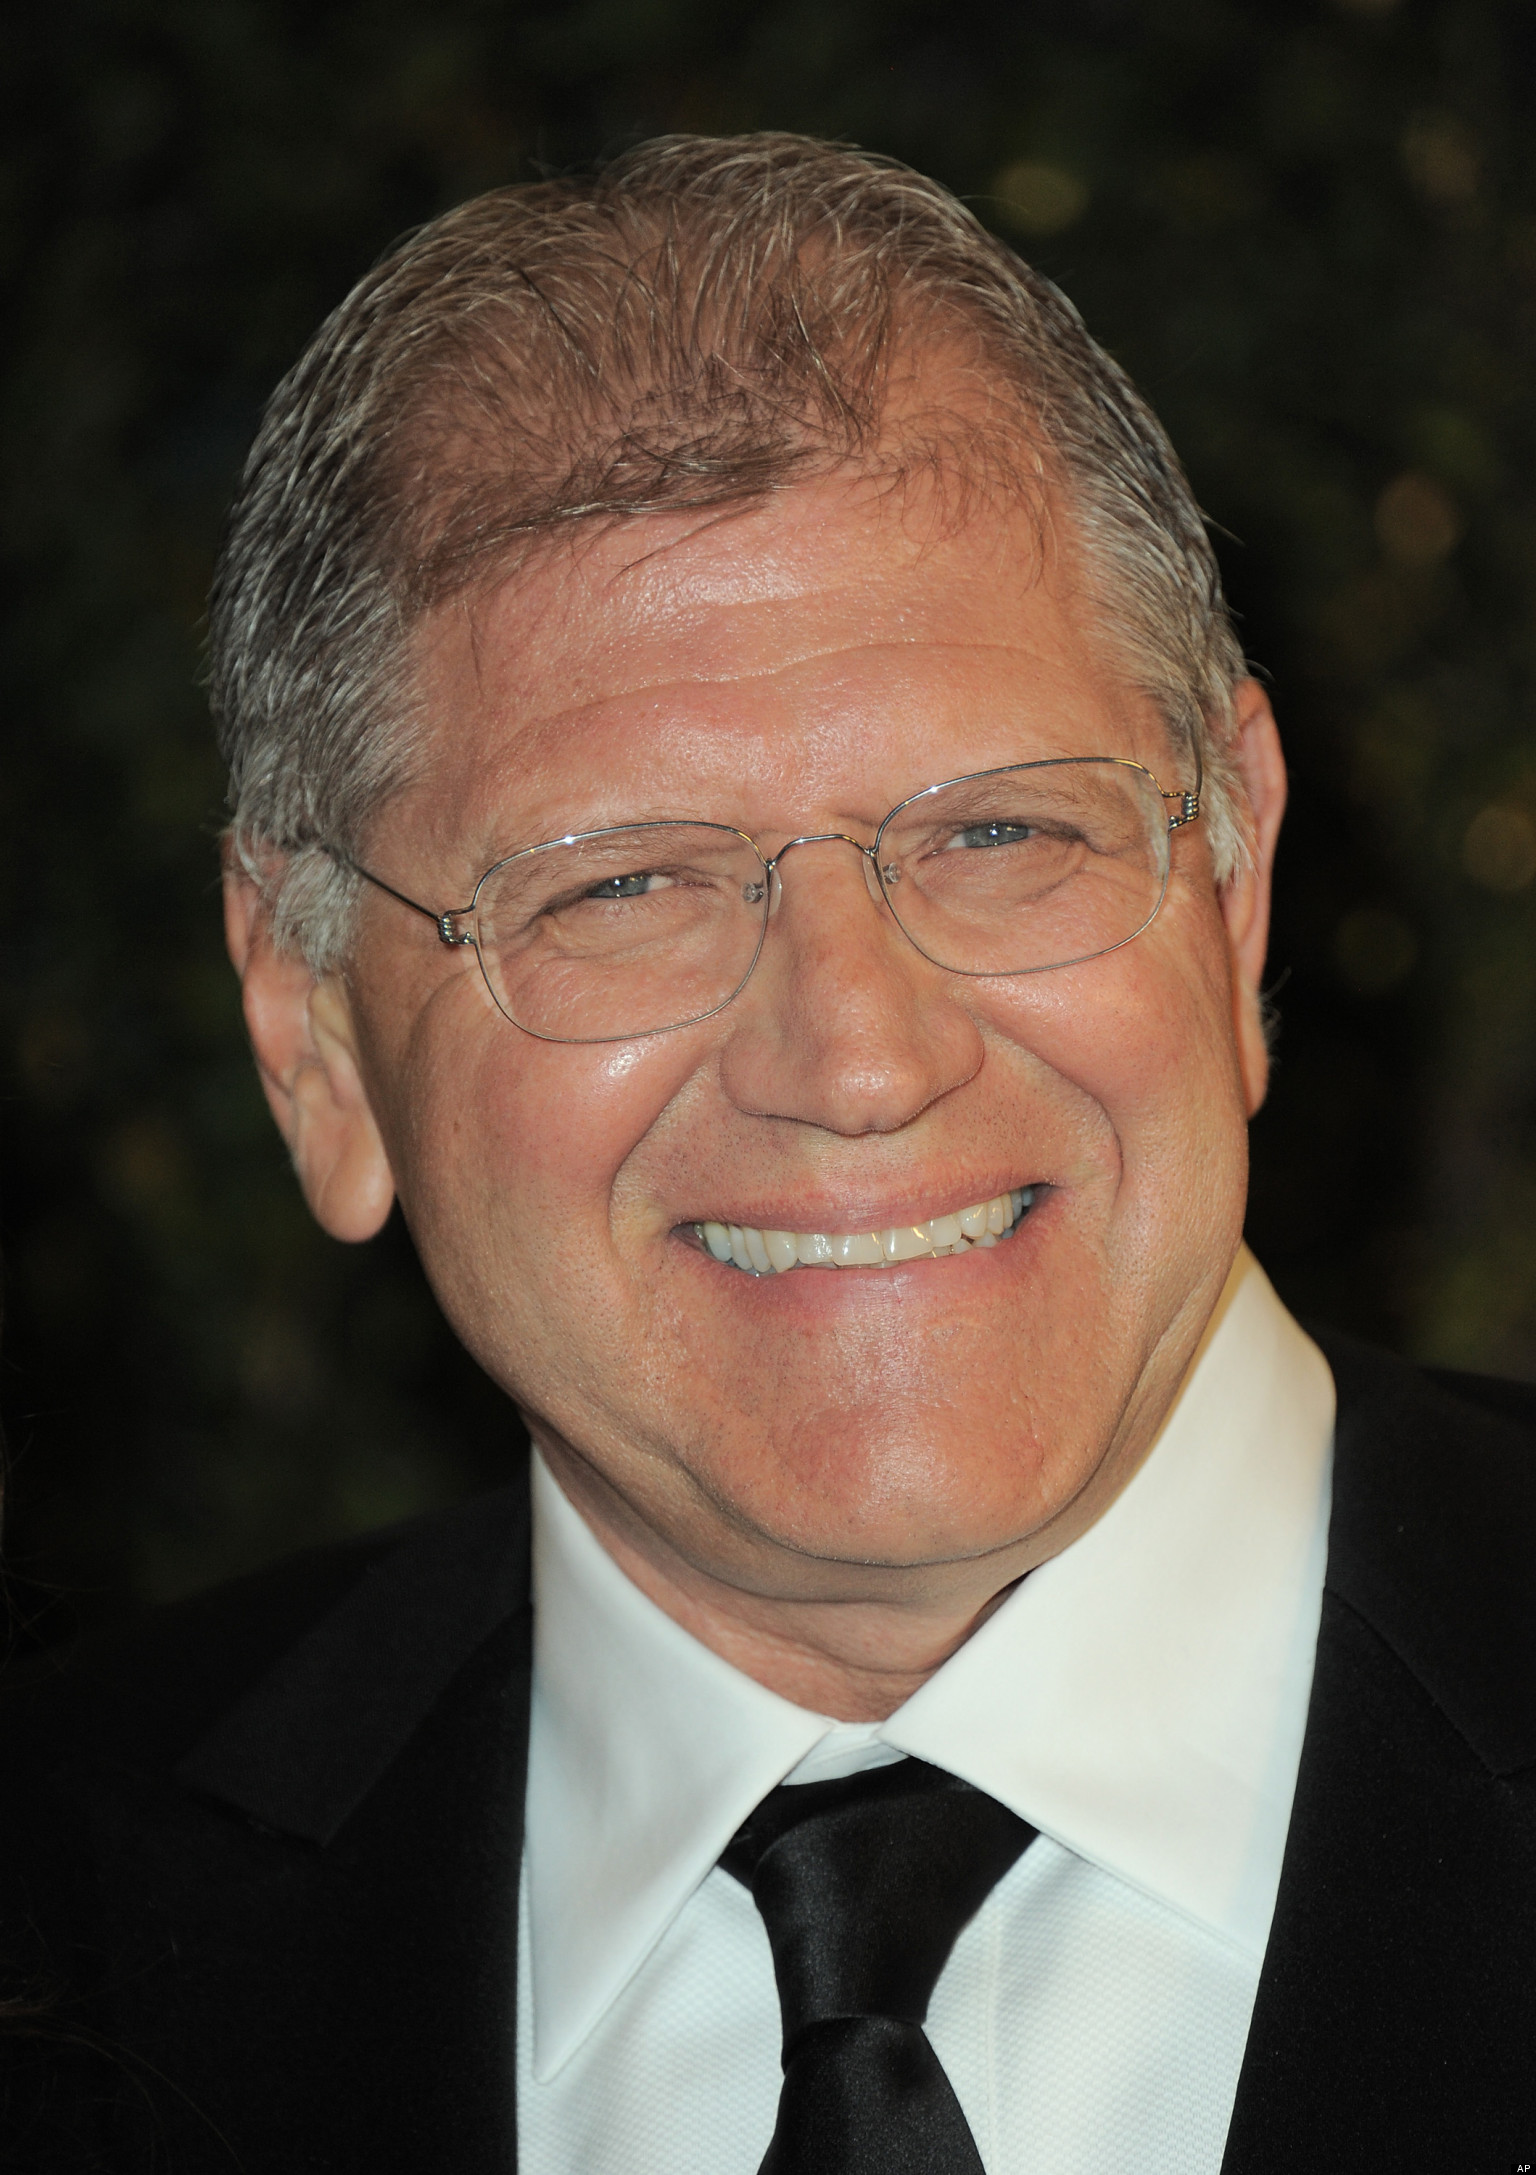 Robert Zemeckis earned a  million dollar salary, leaving the net worth at 50 million in 2017